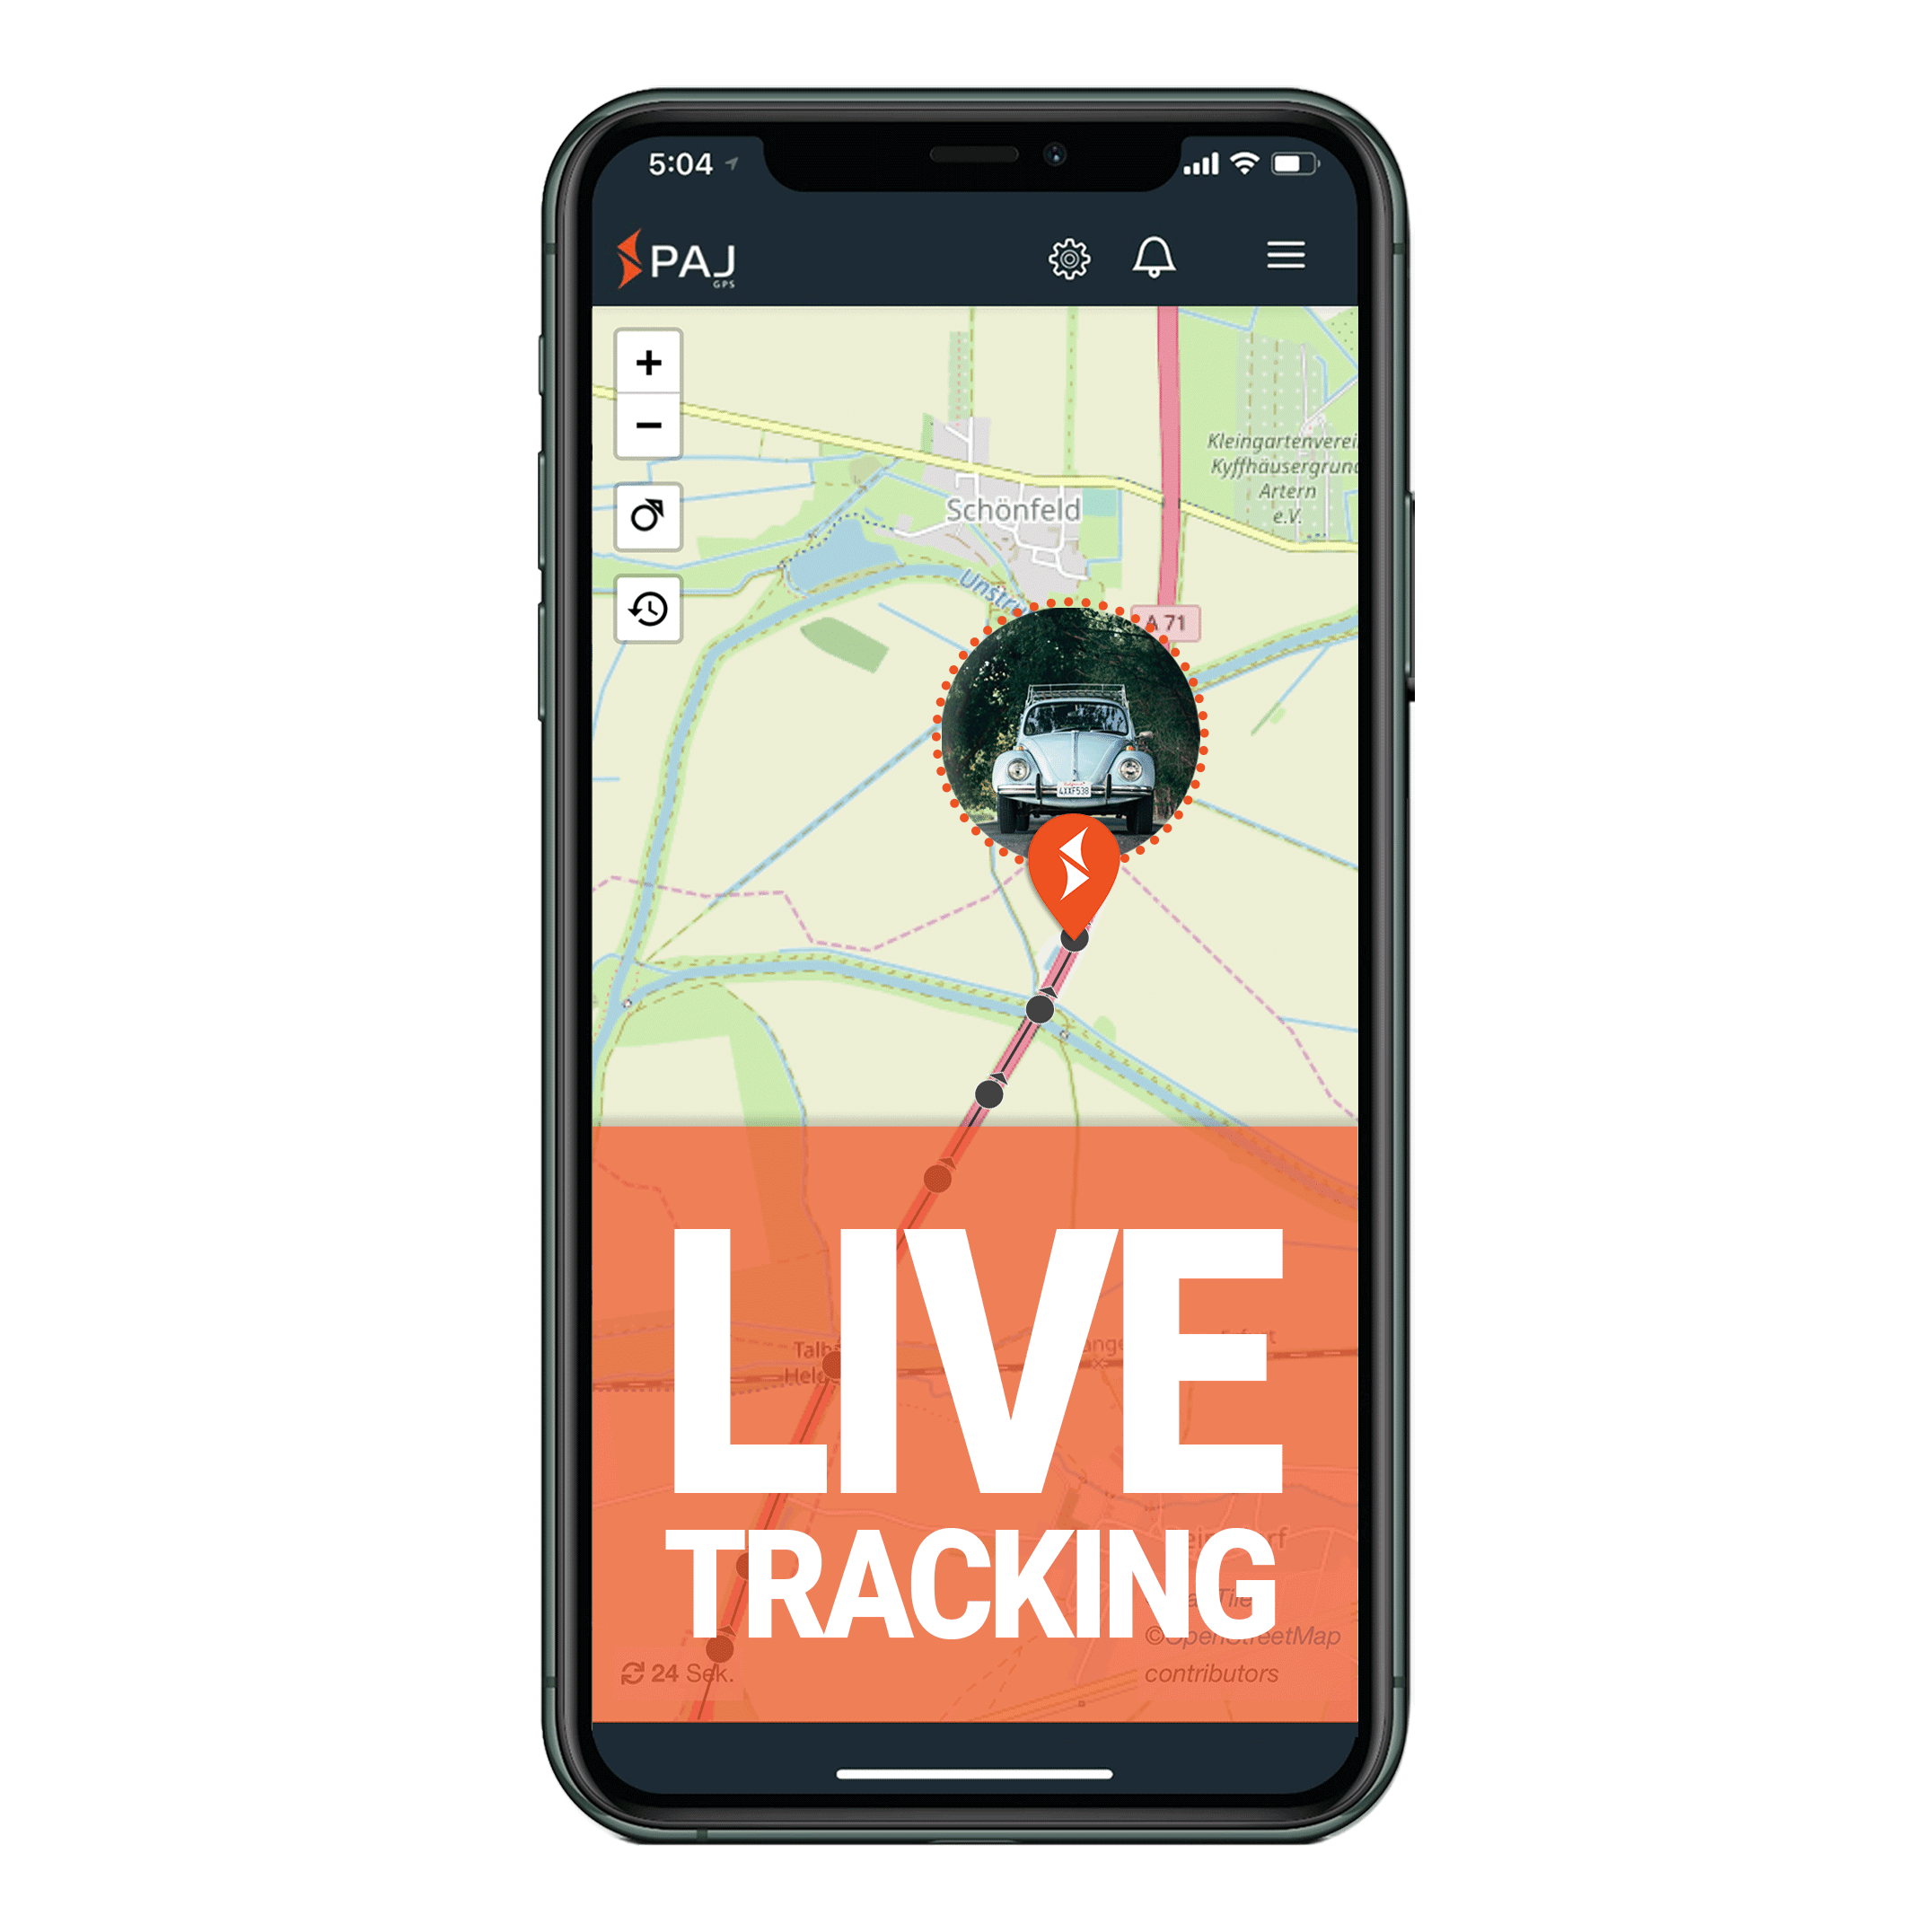 mock-up-anwendungsgebiet-gps-tracker-oldtimer-live-tracking